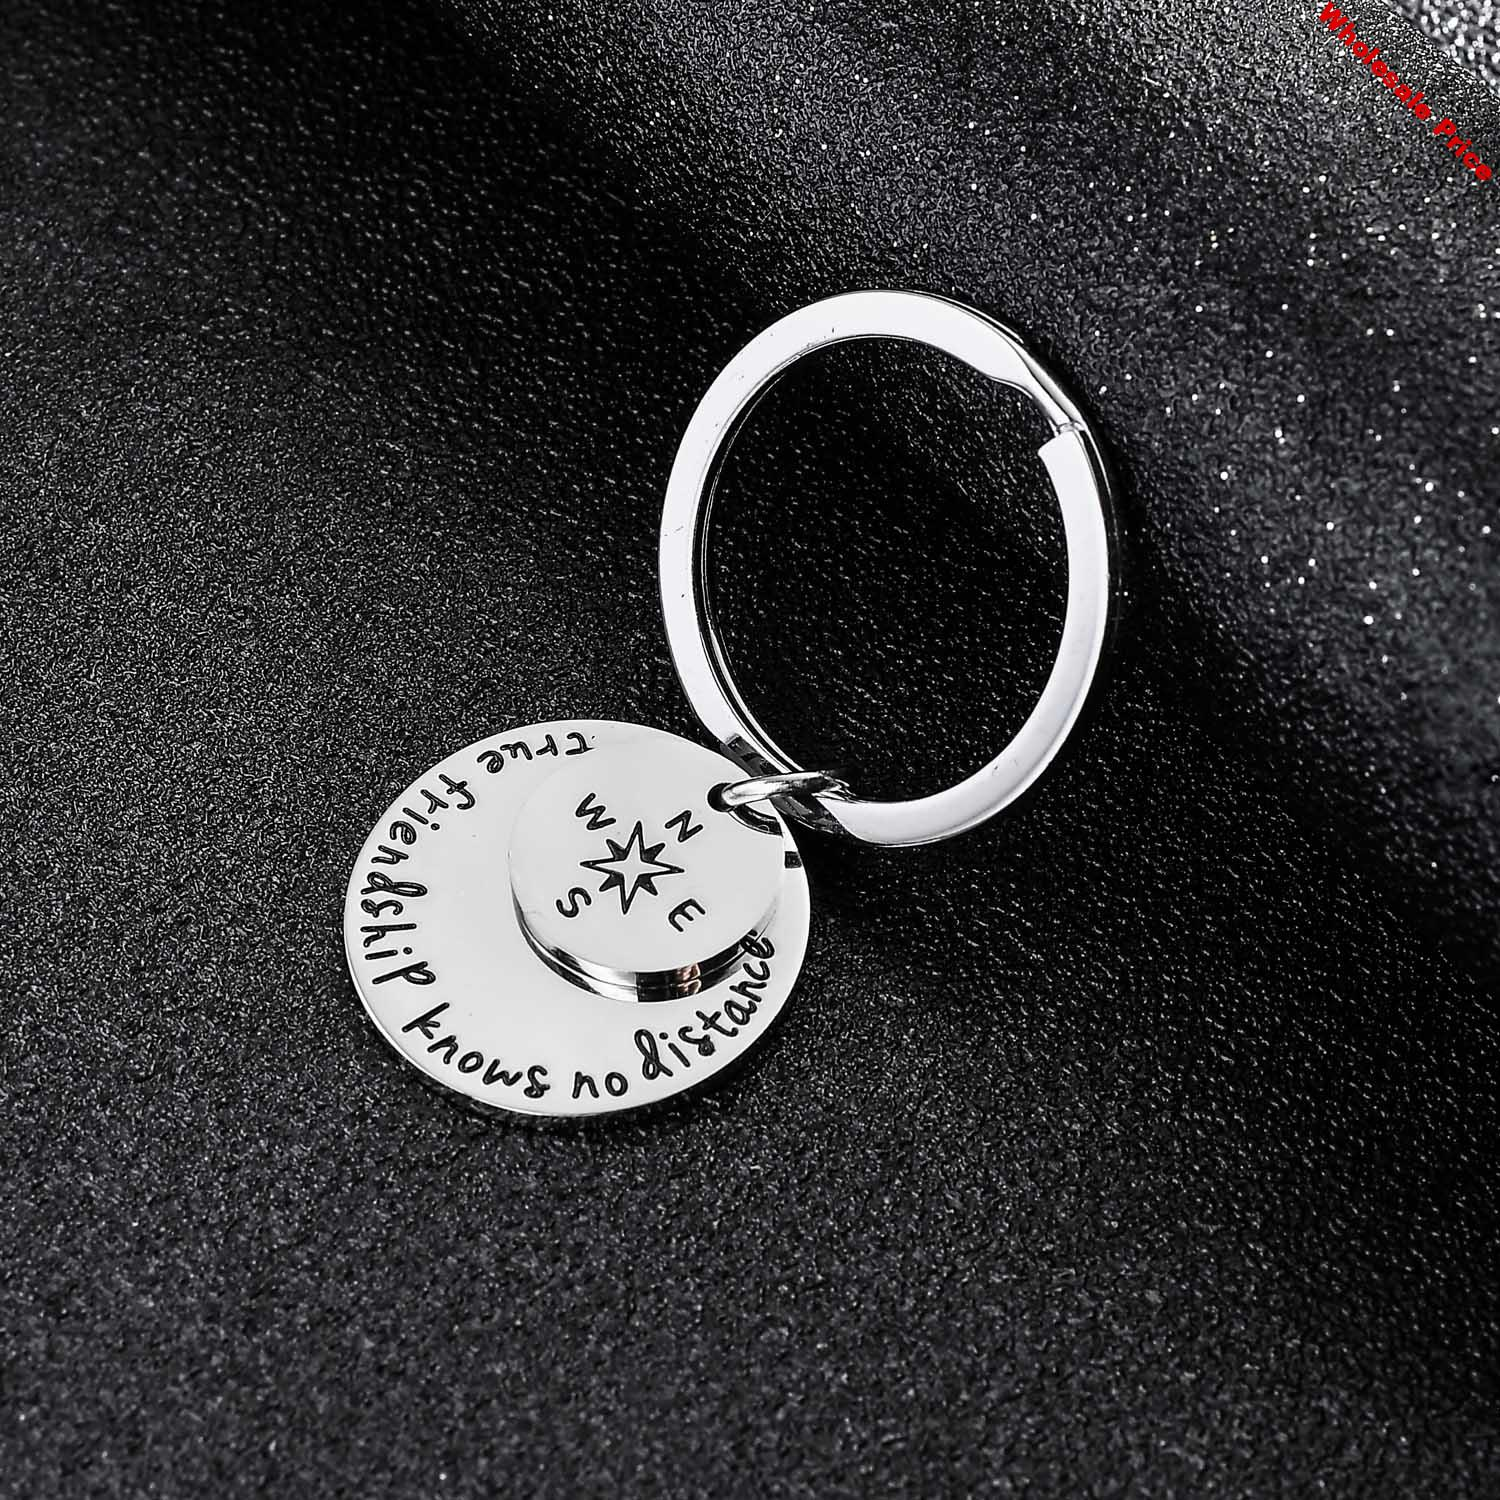 12PC Wholesale Compass True Friendship Knows No Distance Keyrings Stainless Steel Charm Pendant Keychains Best Friends BFF Gifts